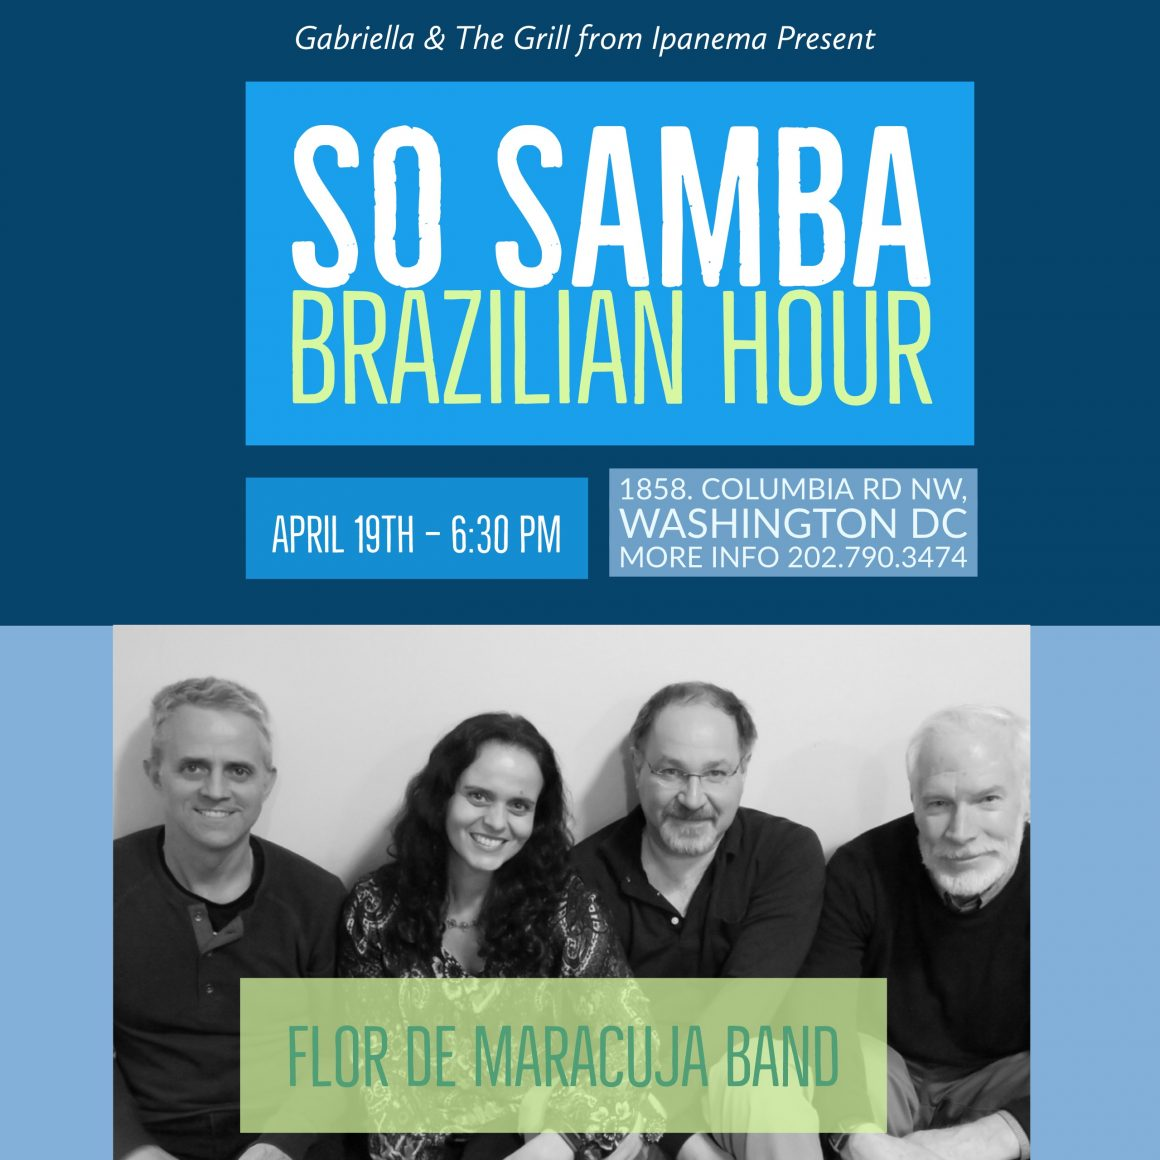 Live Brazilian Music, Food & Drinks, April 19th 7:00pm